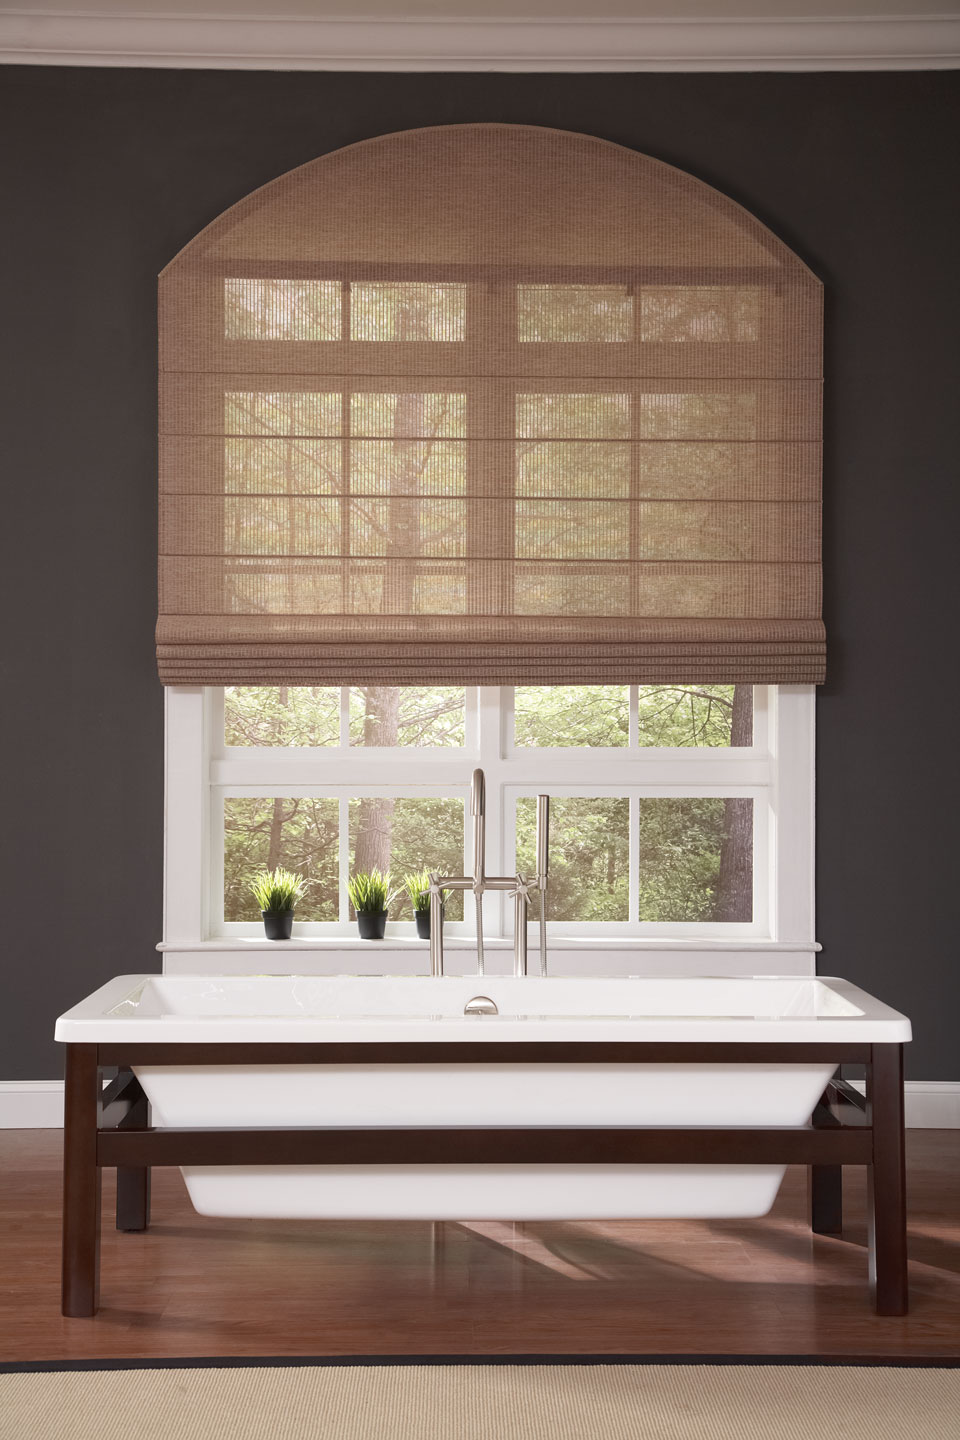 A tan Genesis® Flat Roman Shade behind a sink in a bathroom setting